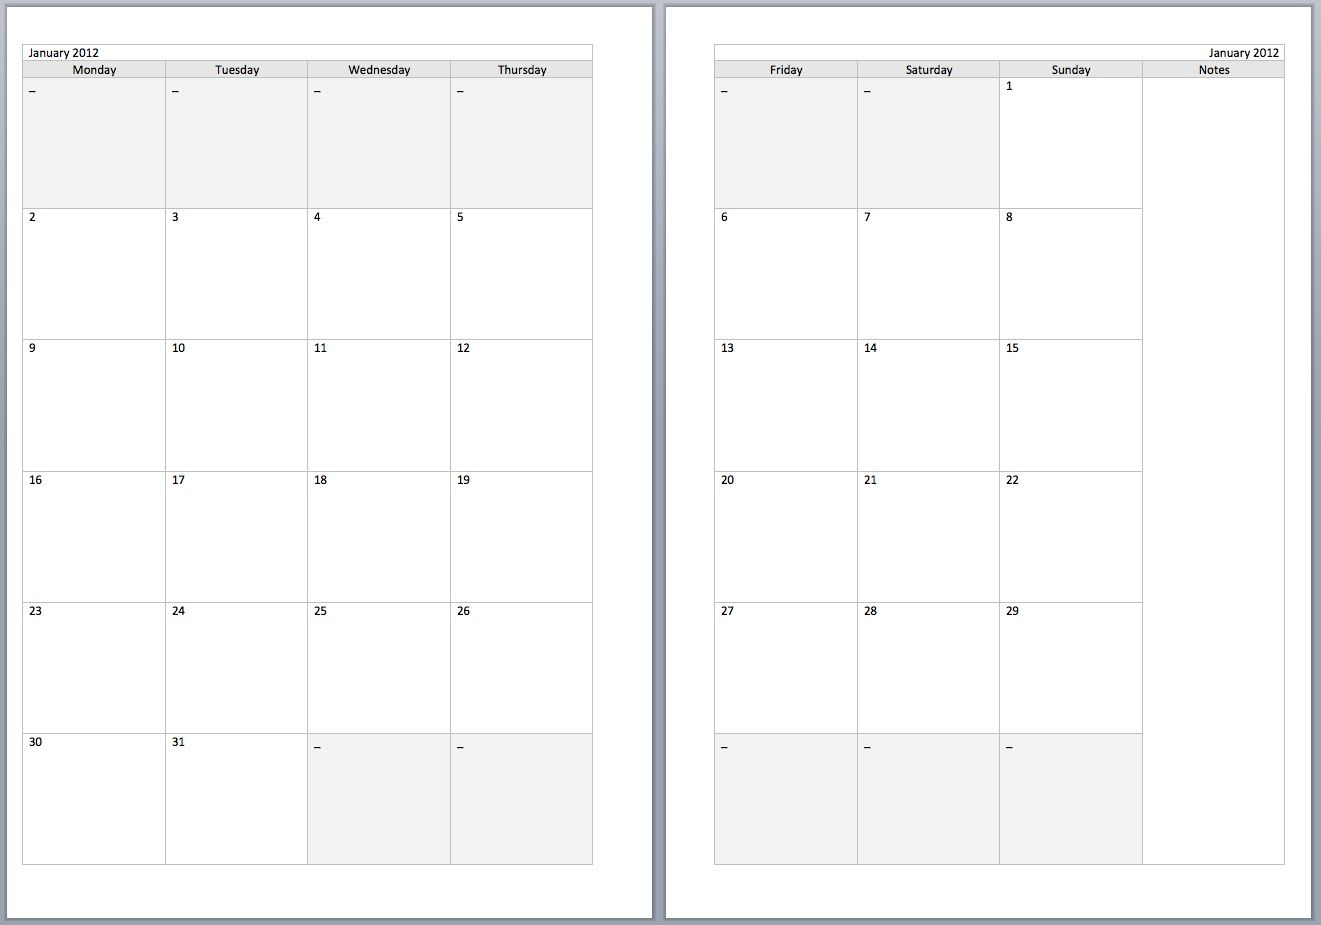 Calendar Sizes Ideas : Free monthly filofax diary templates for a and personal